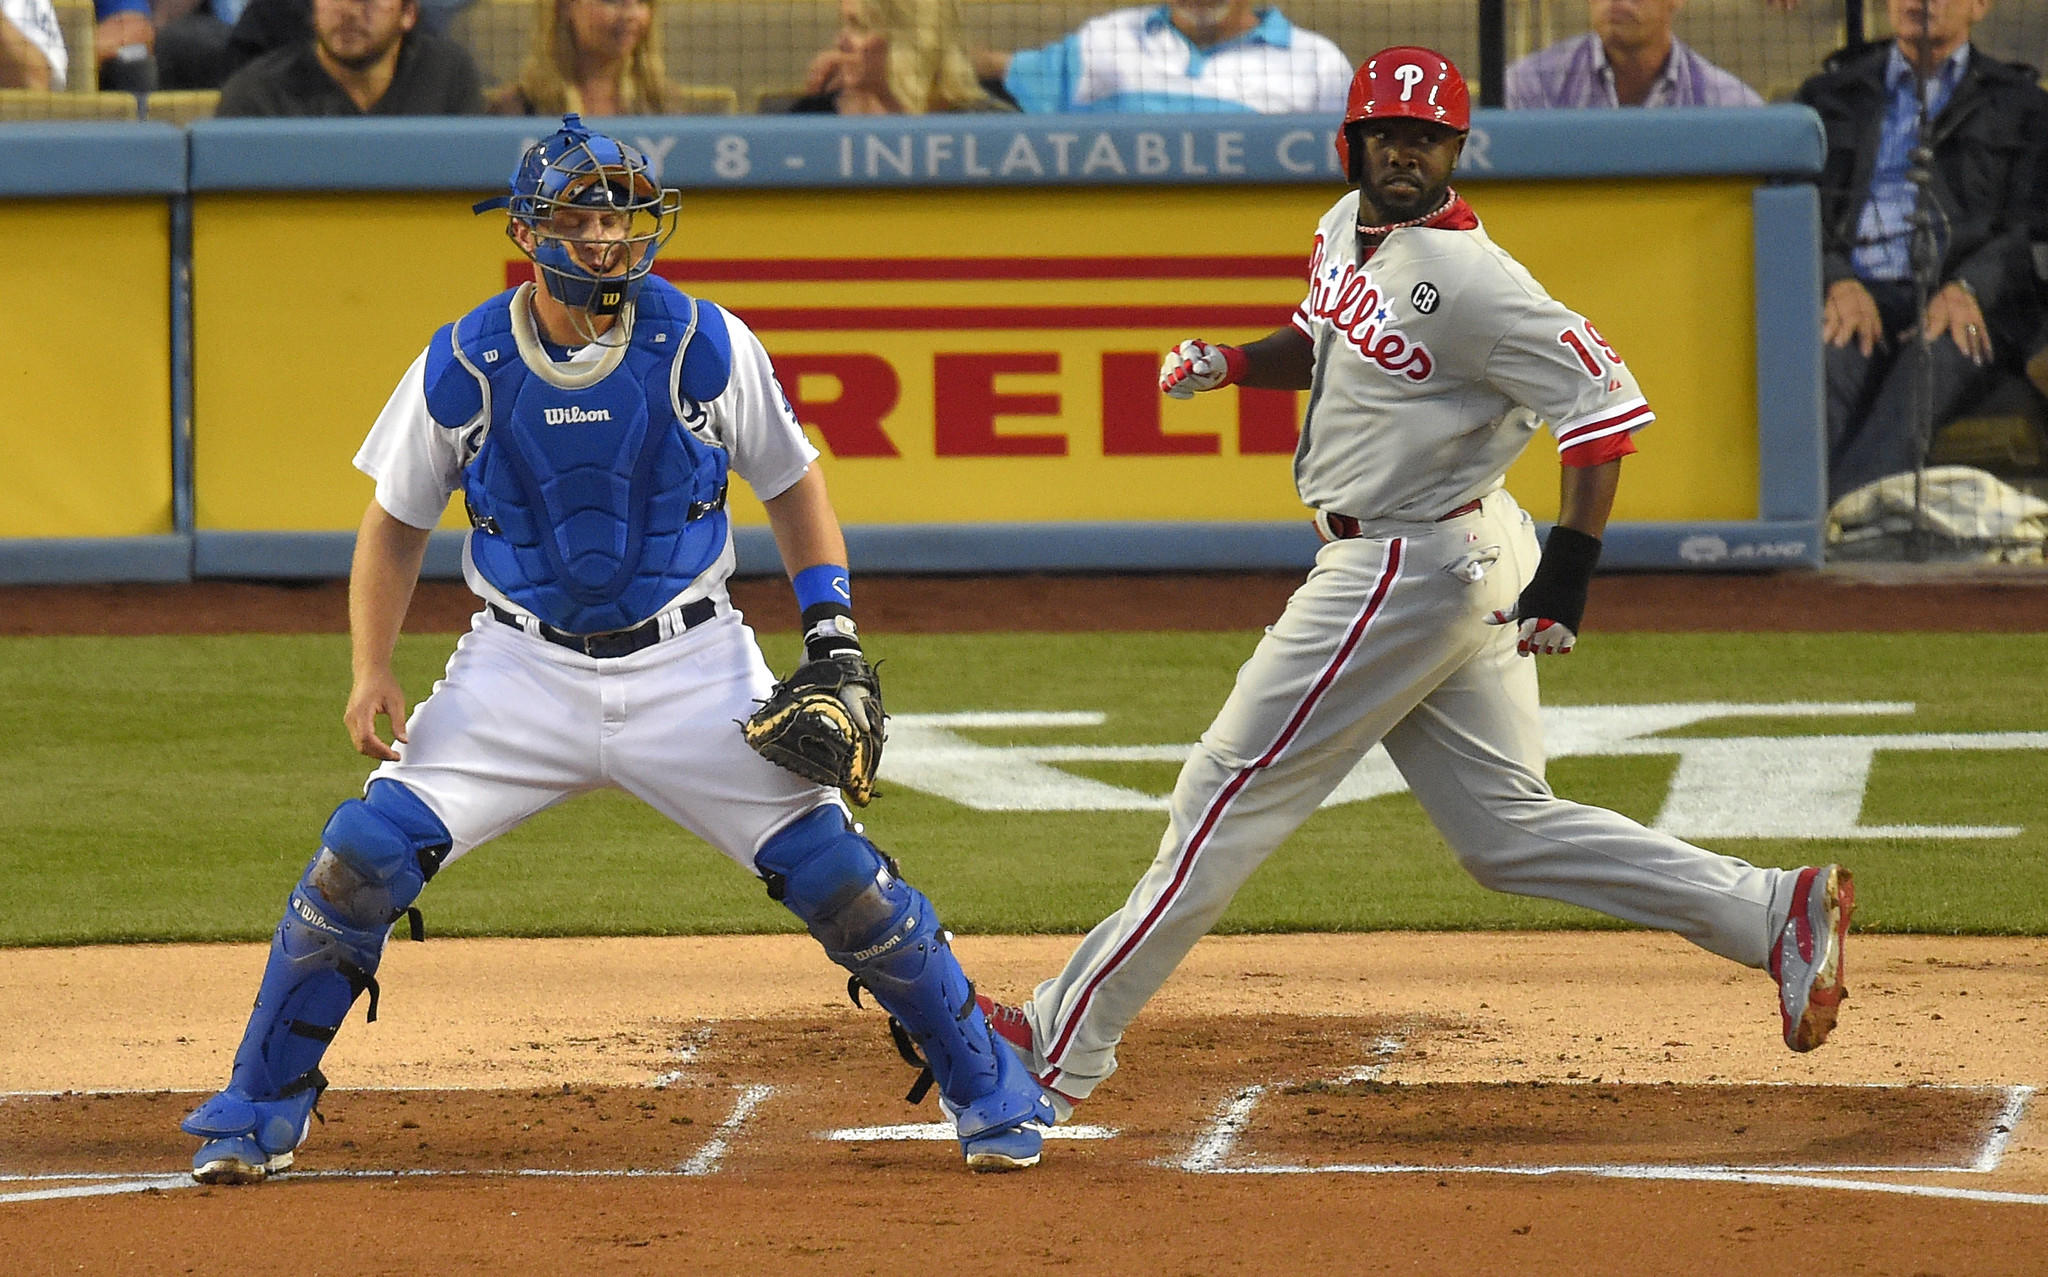 Philadelphia Phillies center fielder Tony Gwynn Jr., right, scores next to Dodgers catcher Tim Federowicz on a double by Carlos Ruiz in the first inning of the Dodgers' 7-0 loss Monday at Dodger Stadium.